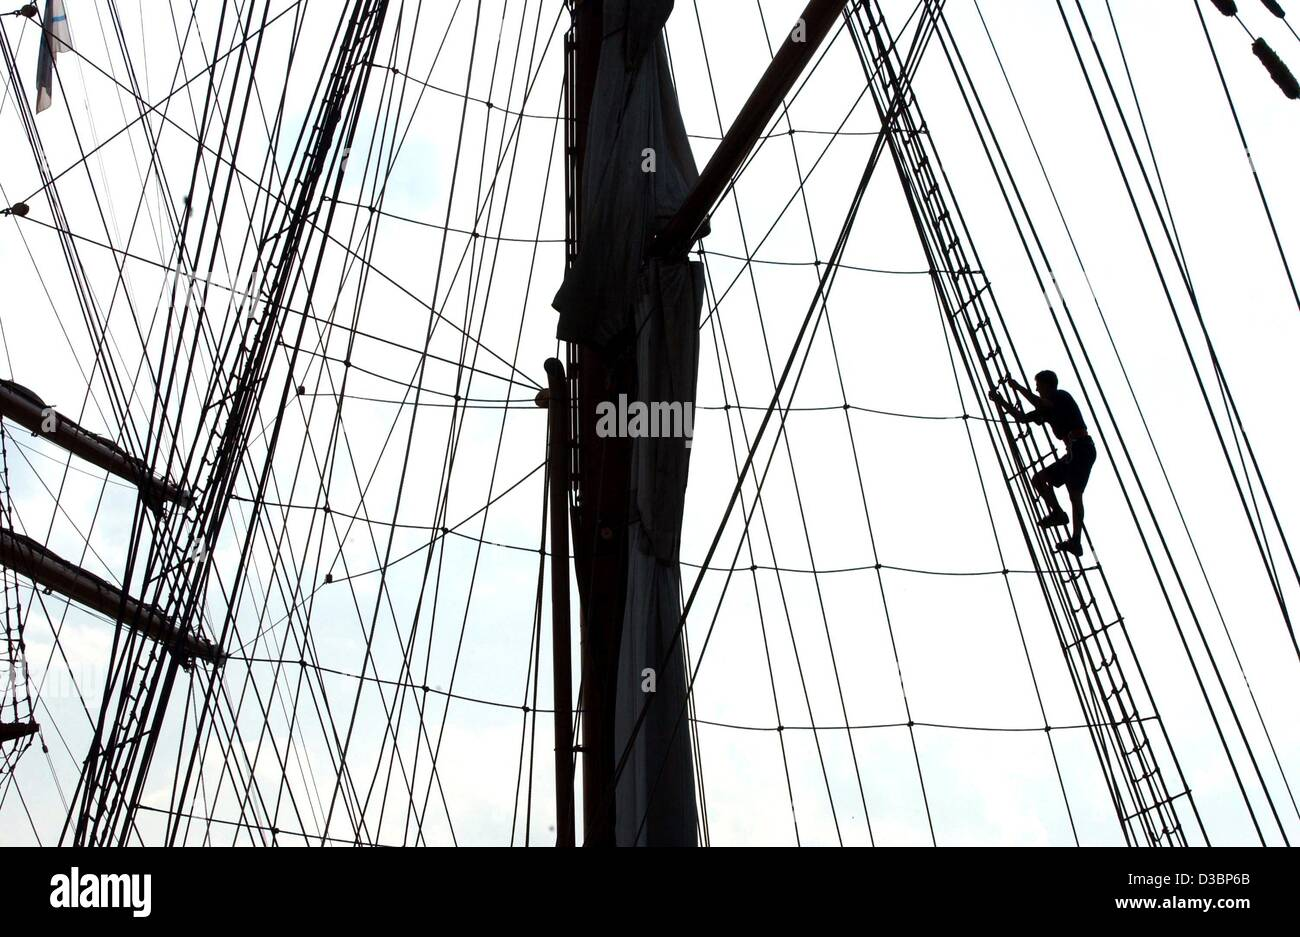 (dpa) - A sailor climbs up the main mast of the sailing vessel Sea Cloud II in Hamburg, Germany, 12 August 2003. Stock Photo